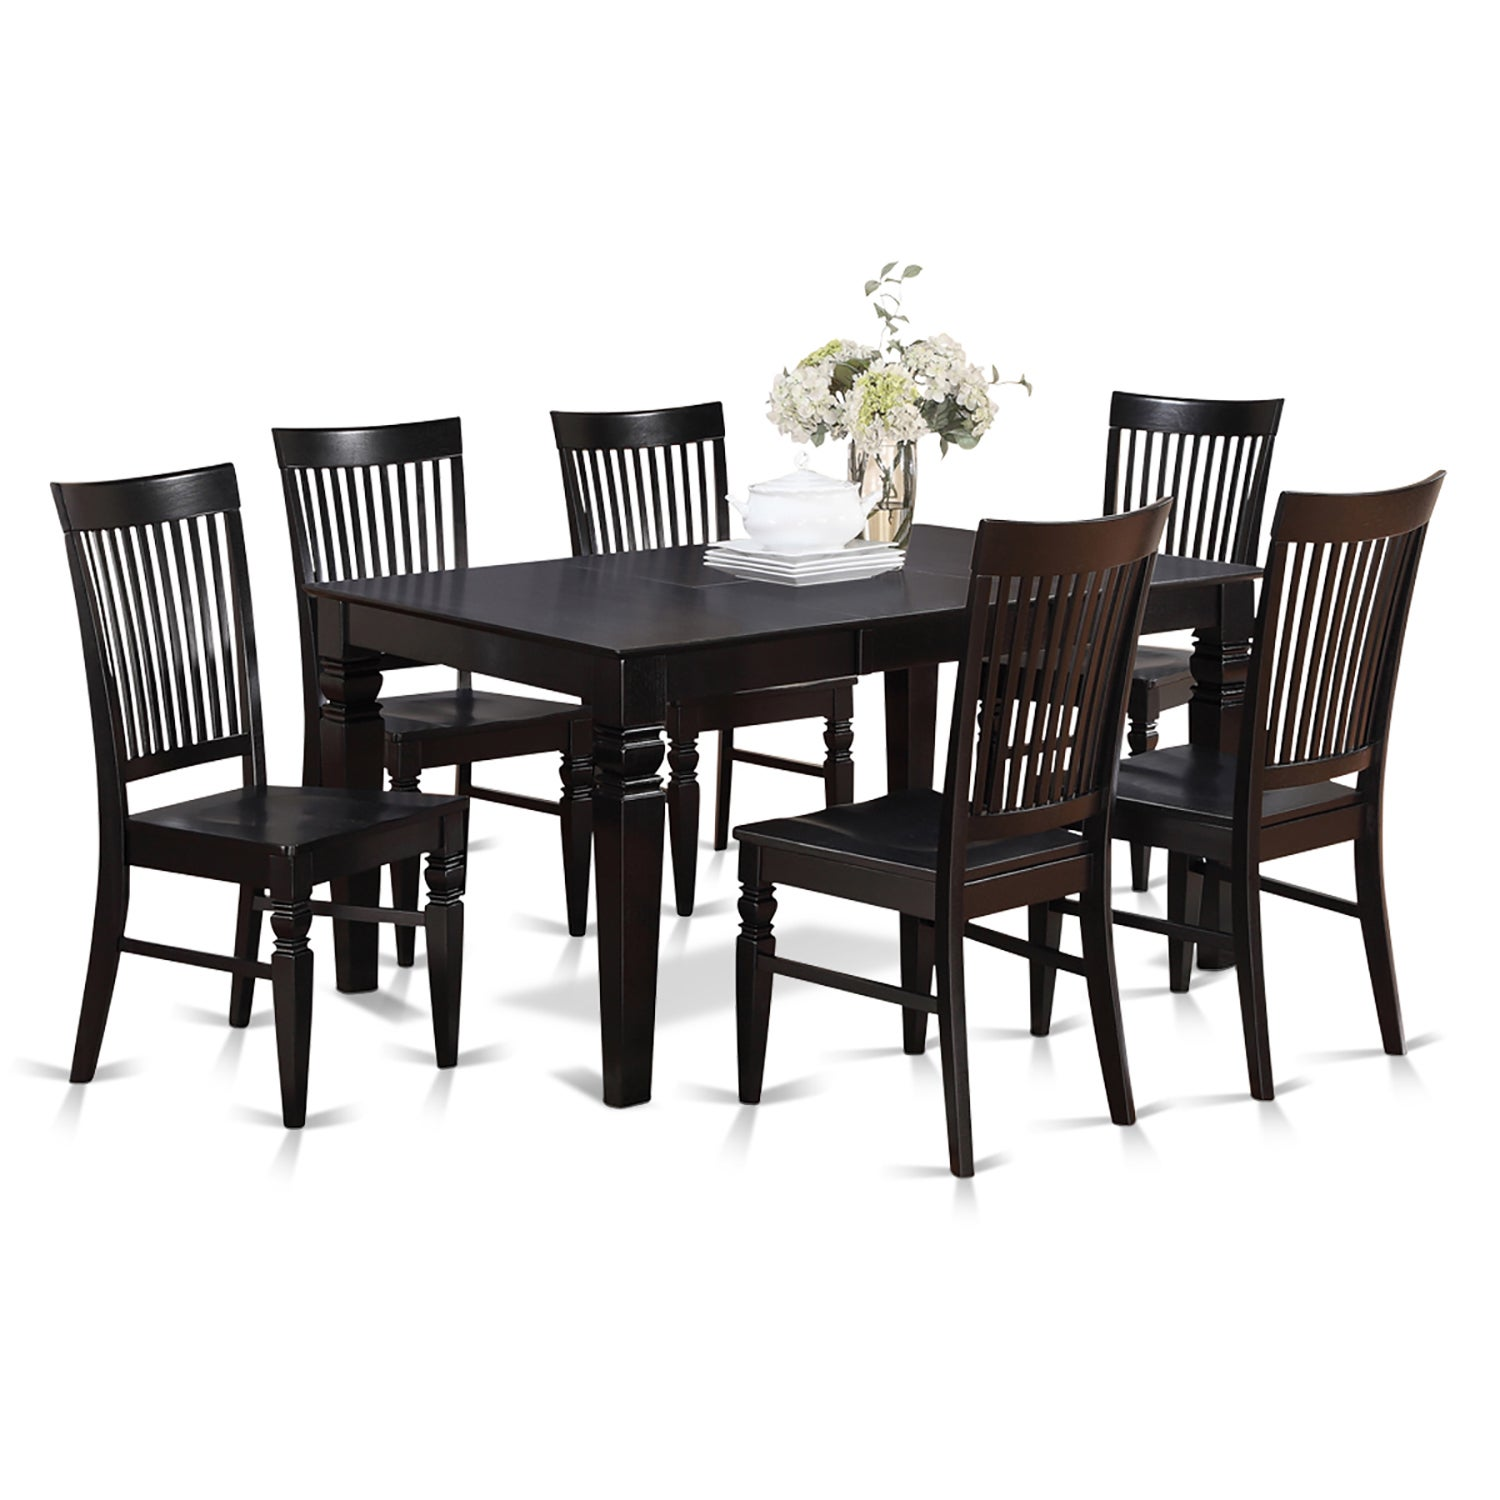 7 piece dining table affordable shop 7piece dining table and chairs free shipping today overstockcom 10296481